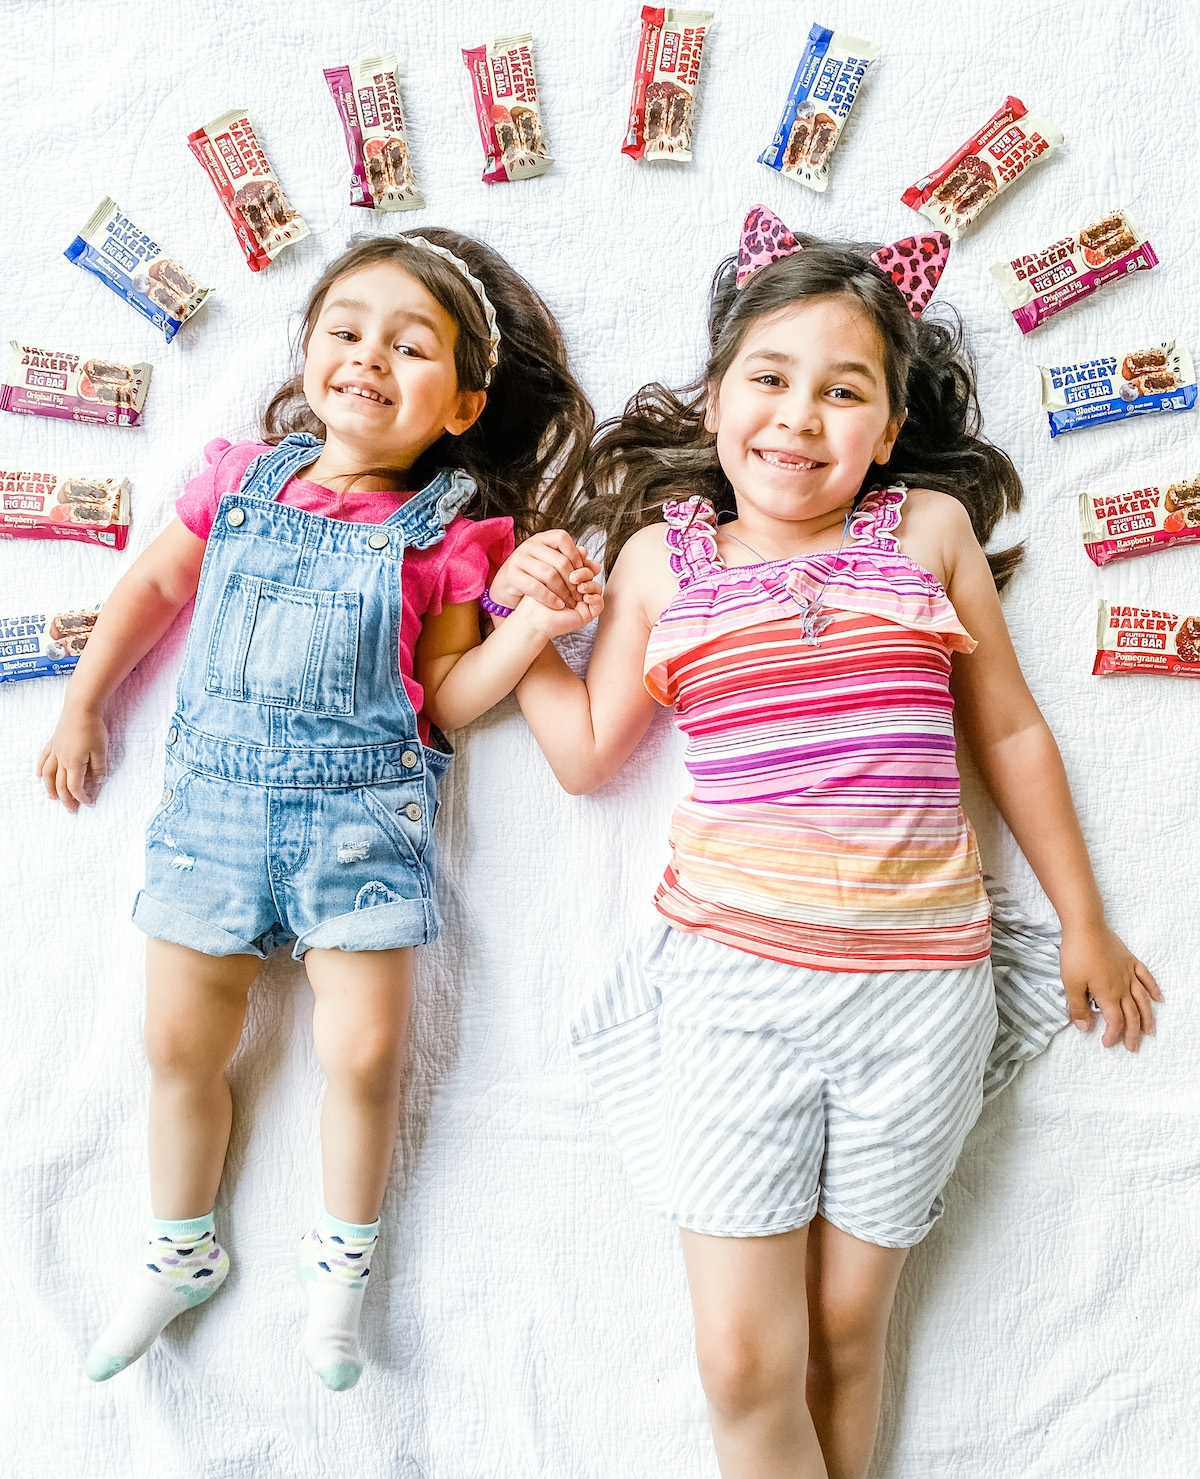 little girls lying down on picnic blanket with snack bars